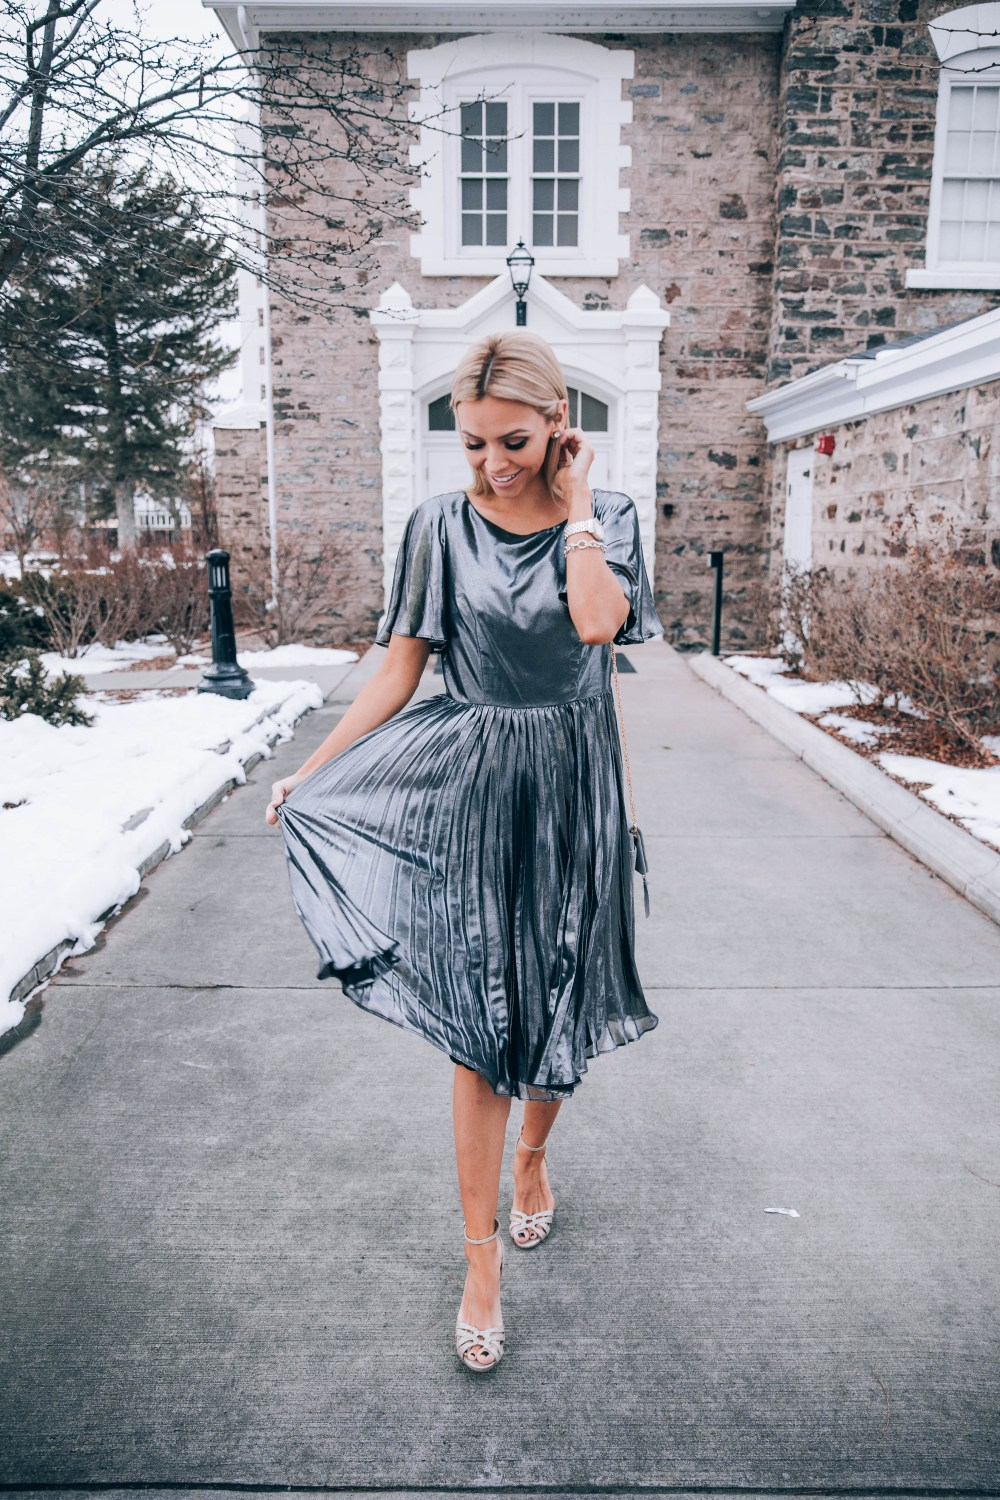 Listing my favorite dresses from Modcloth for the holiday season! I chose this dress because of how classic it is and it can be worn for parties, church, weddings, and more! Any of these dresses would make the perfect holiday outfit! #holidayfashion #newyearsoutfit #christmasoutfit